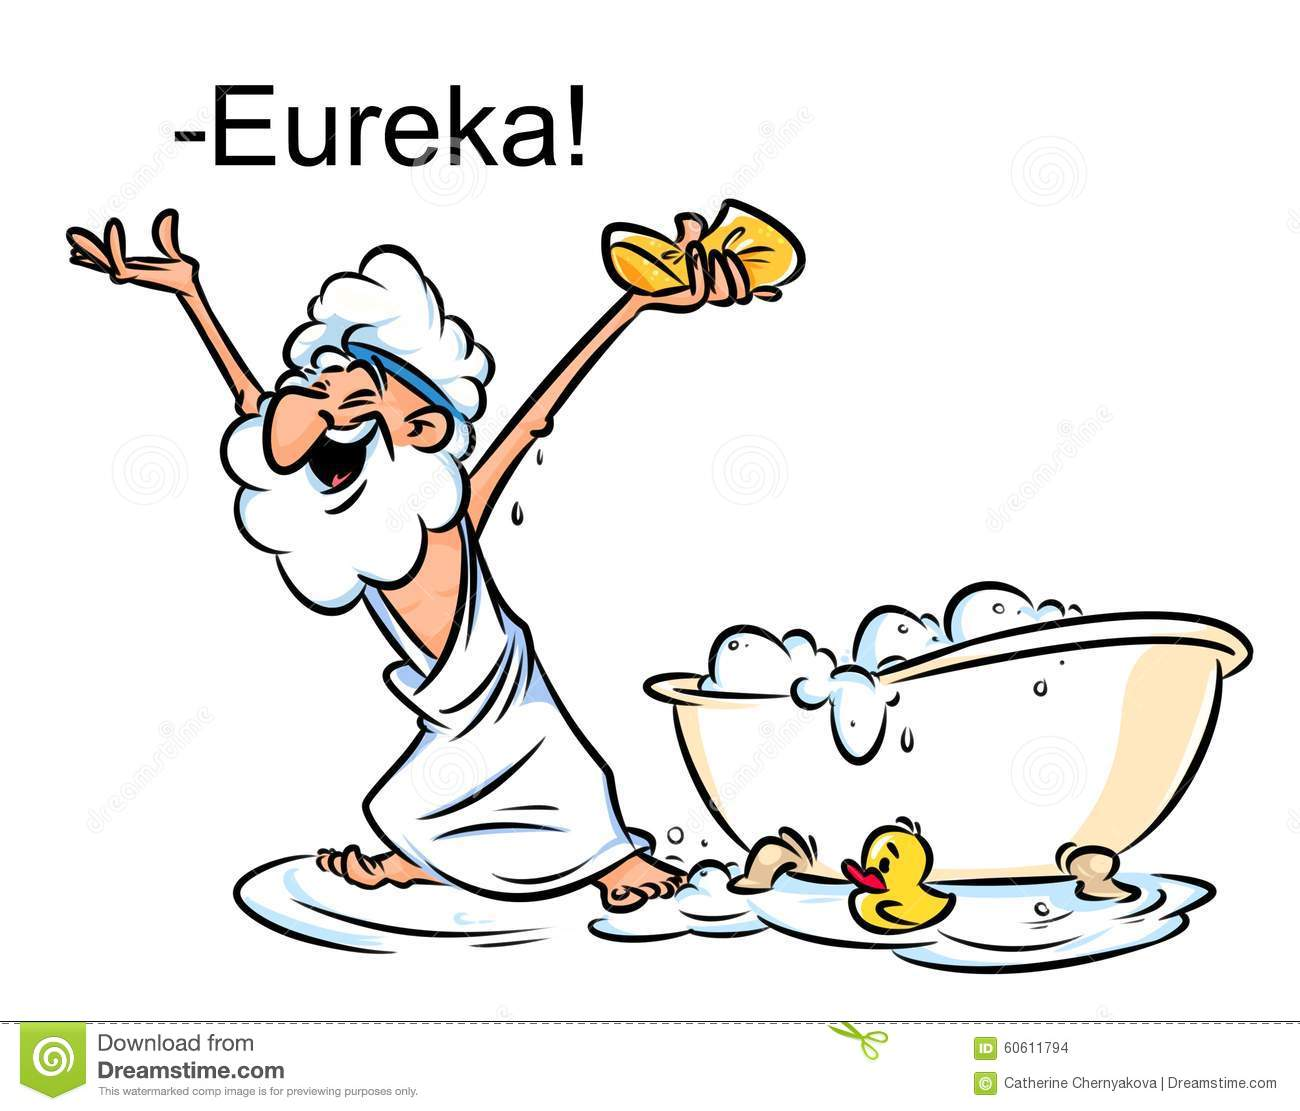 archimedes-eureka-swimming-bath-cartoon-illustration-funny-greek-60611794.jpg